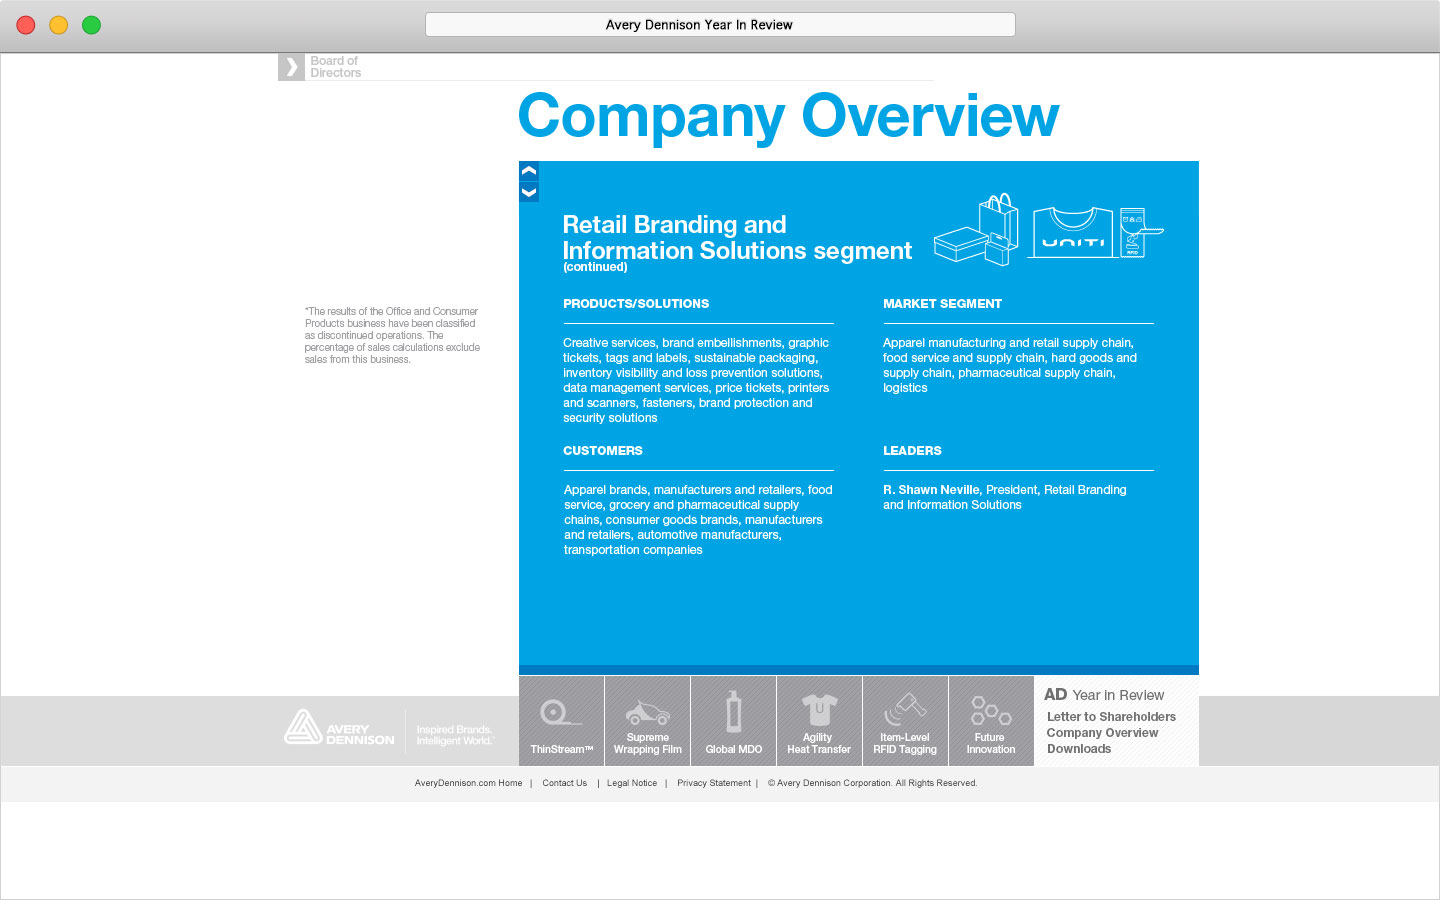 Avery Dennison 2011 Online Year In Review Company Overview